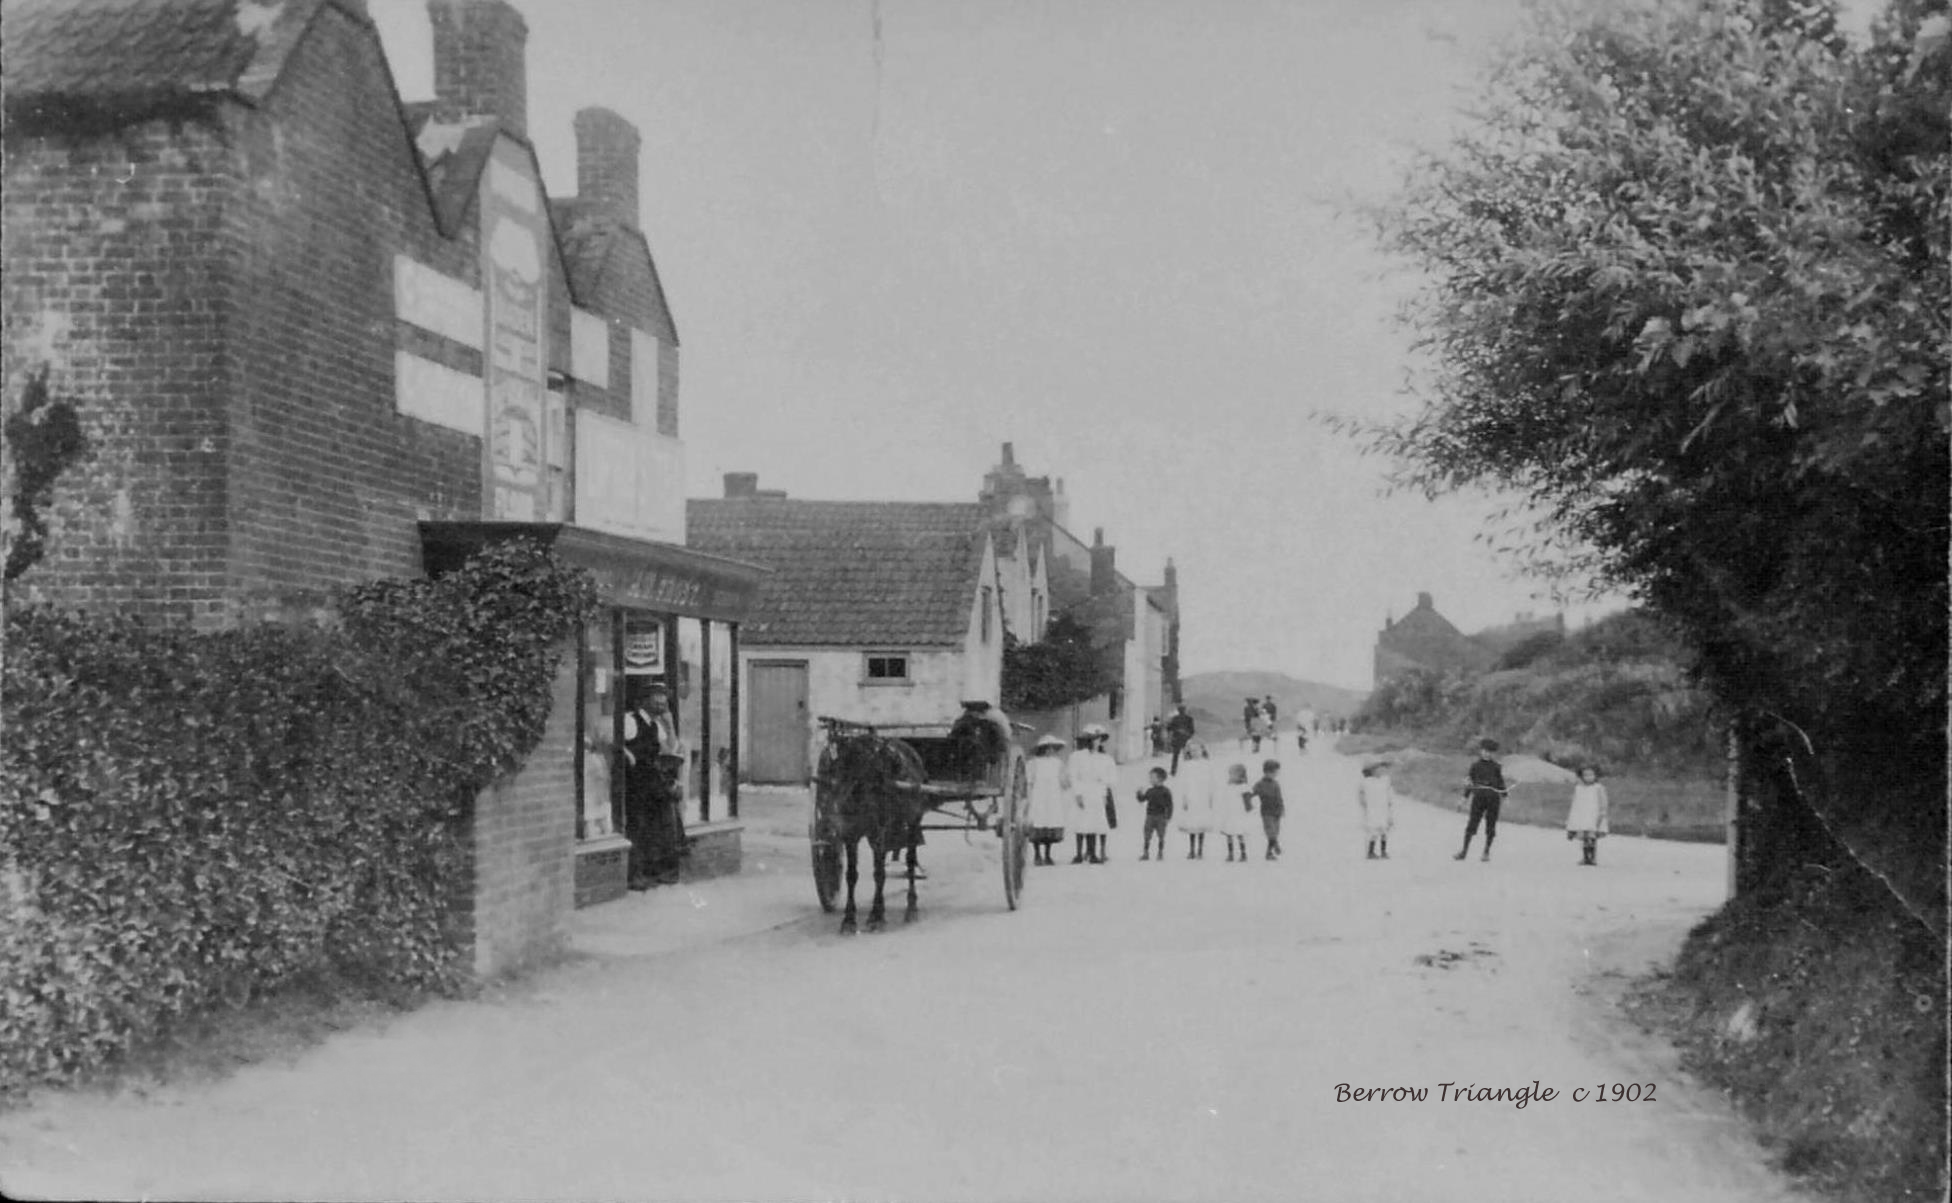 Berrow Triangle, c1902